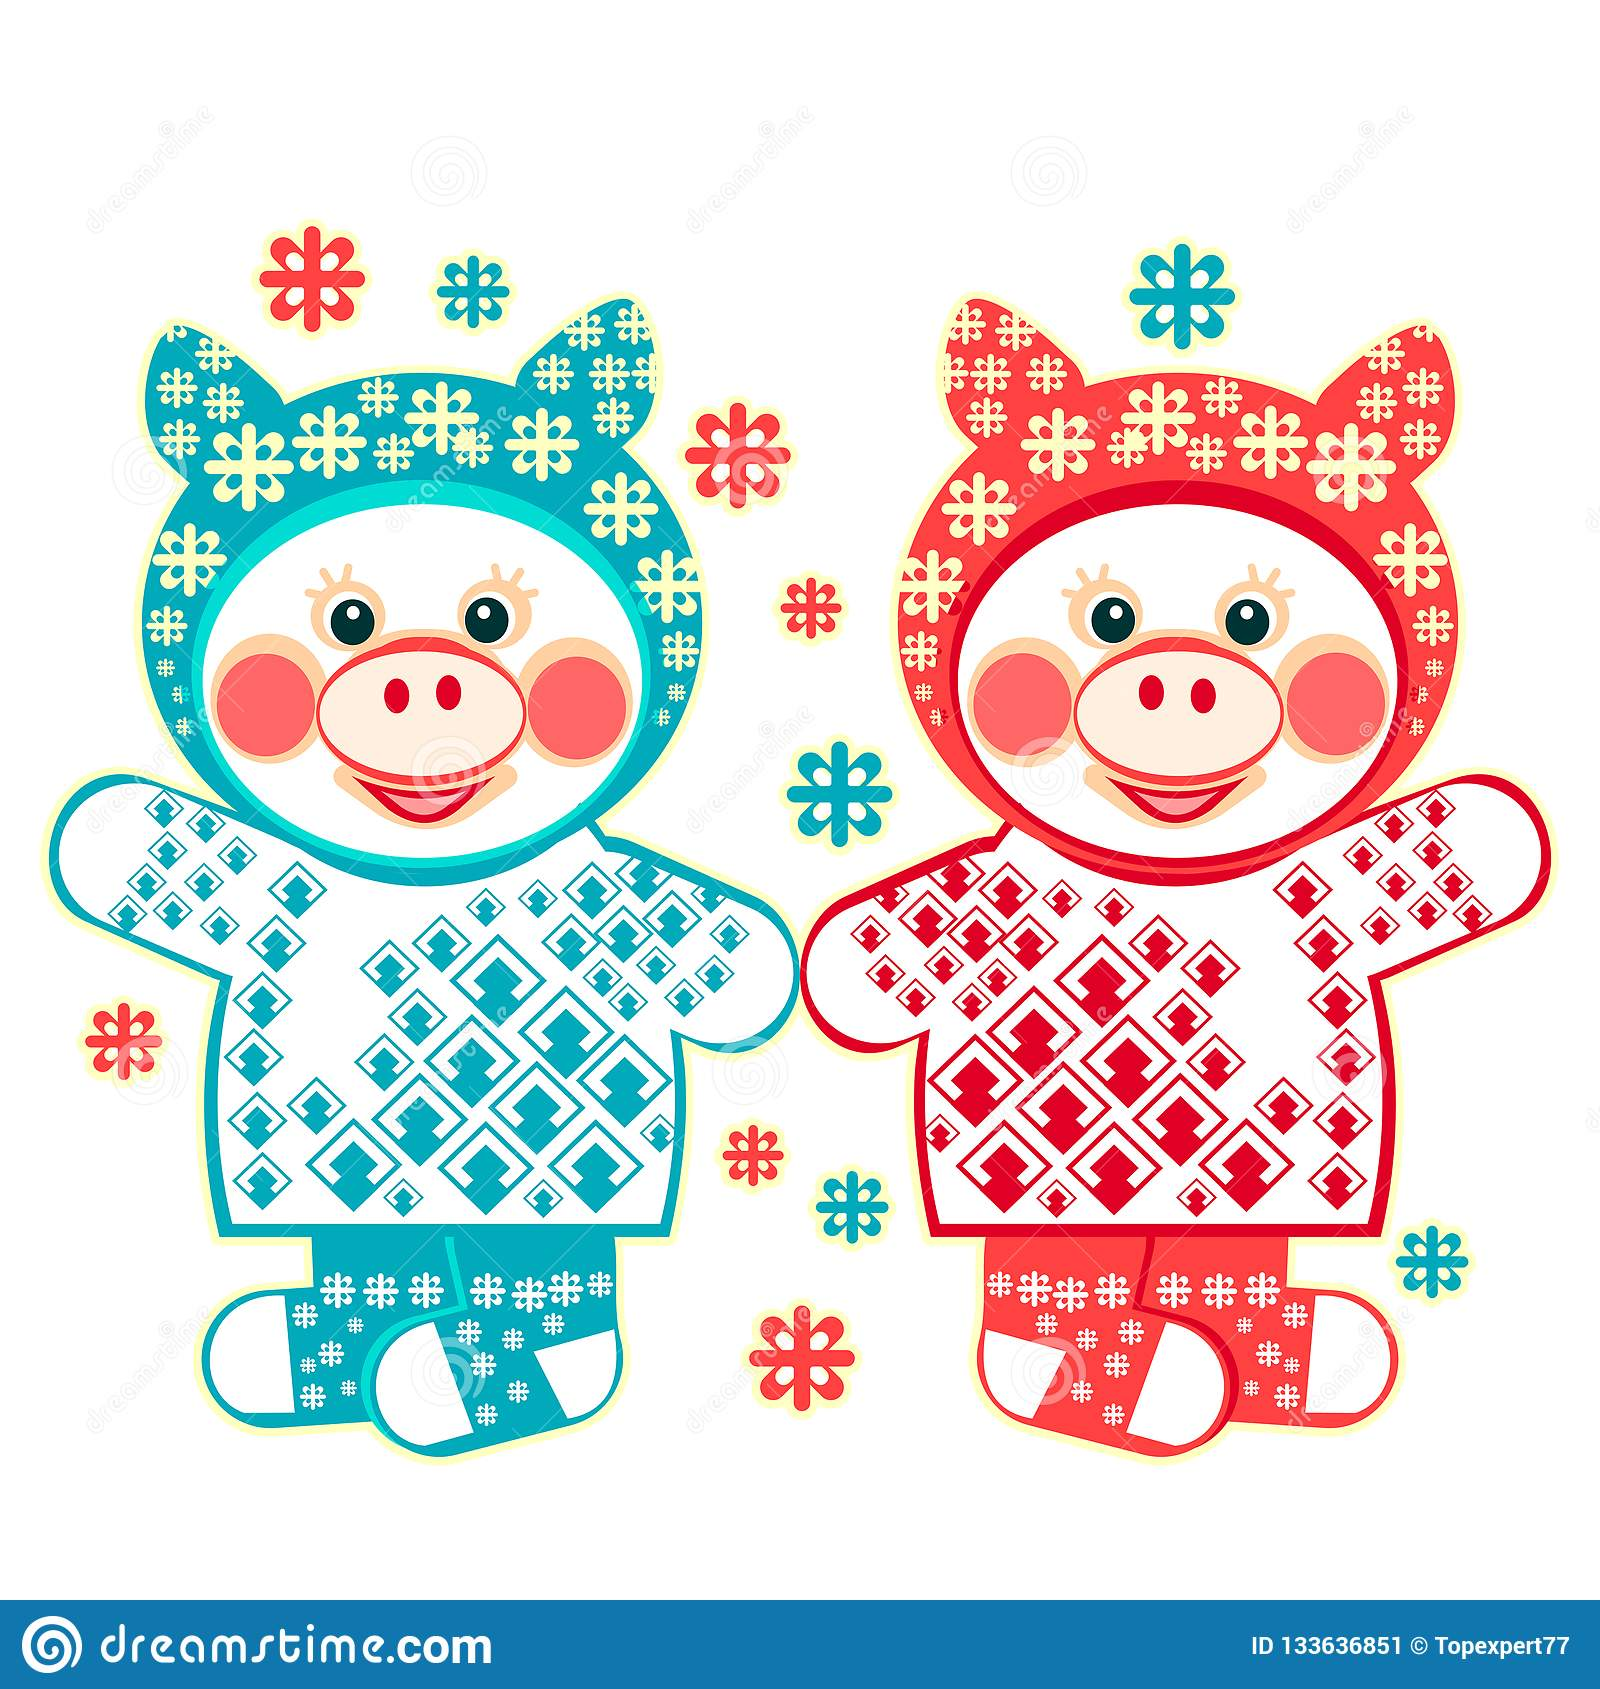 2b4d3d8898f9 Christmas illustration a twins piglets   snowflakes. Image with 2 pigs in winter  clothes